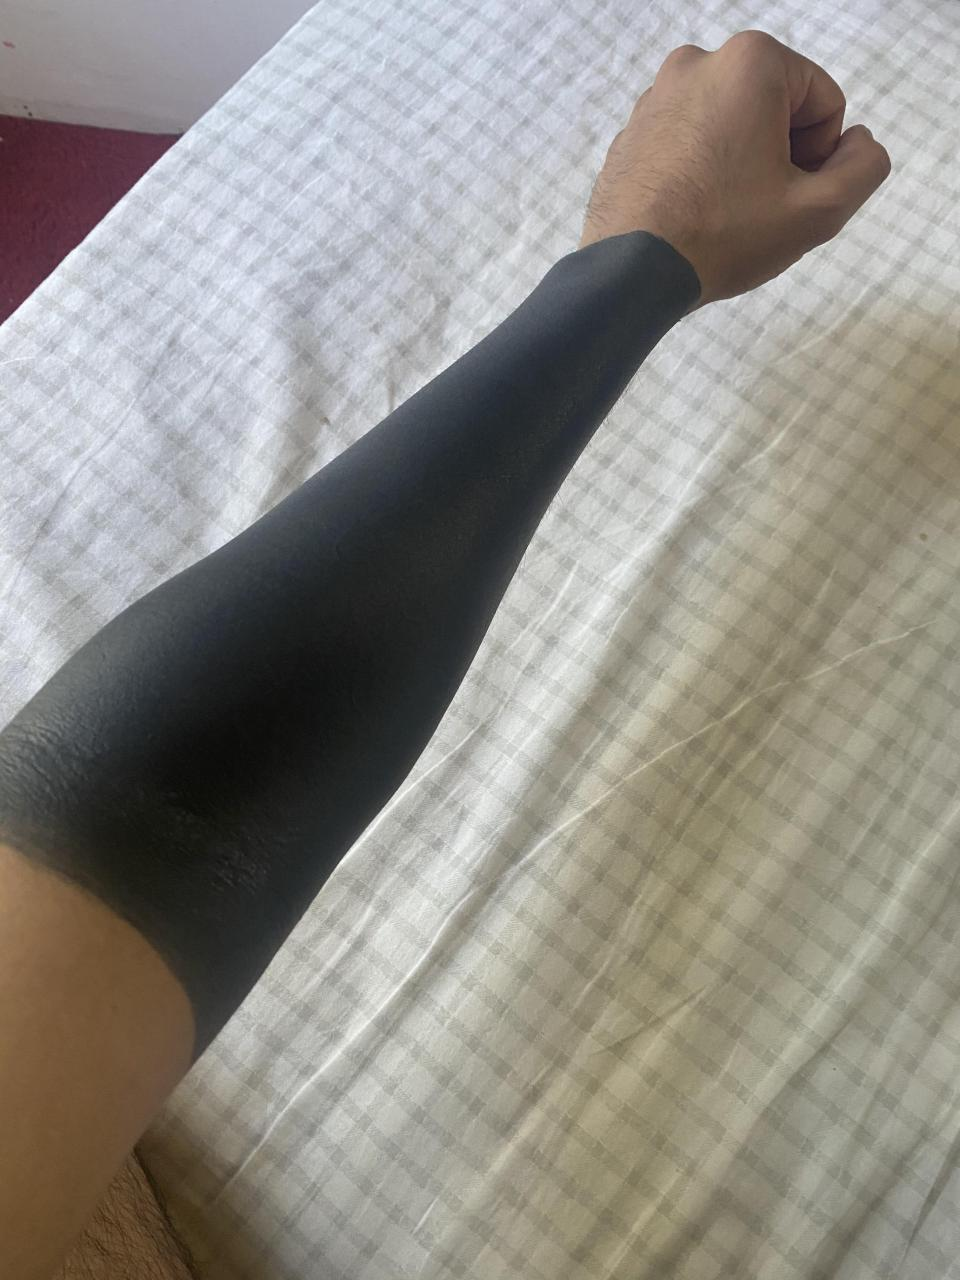 What can I get on my upper arm that would not look bad with the blackout? I don't want to get my upper arm blacked out as well. Please, any suggestions would be awesome!